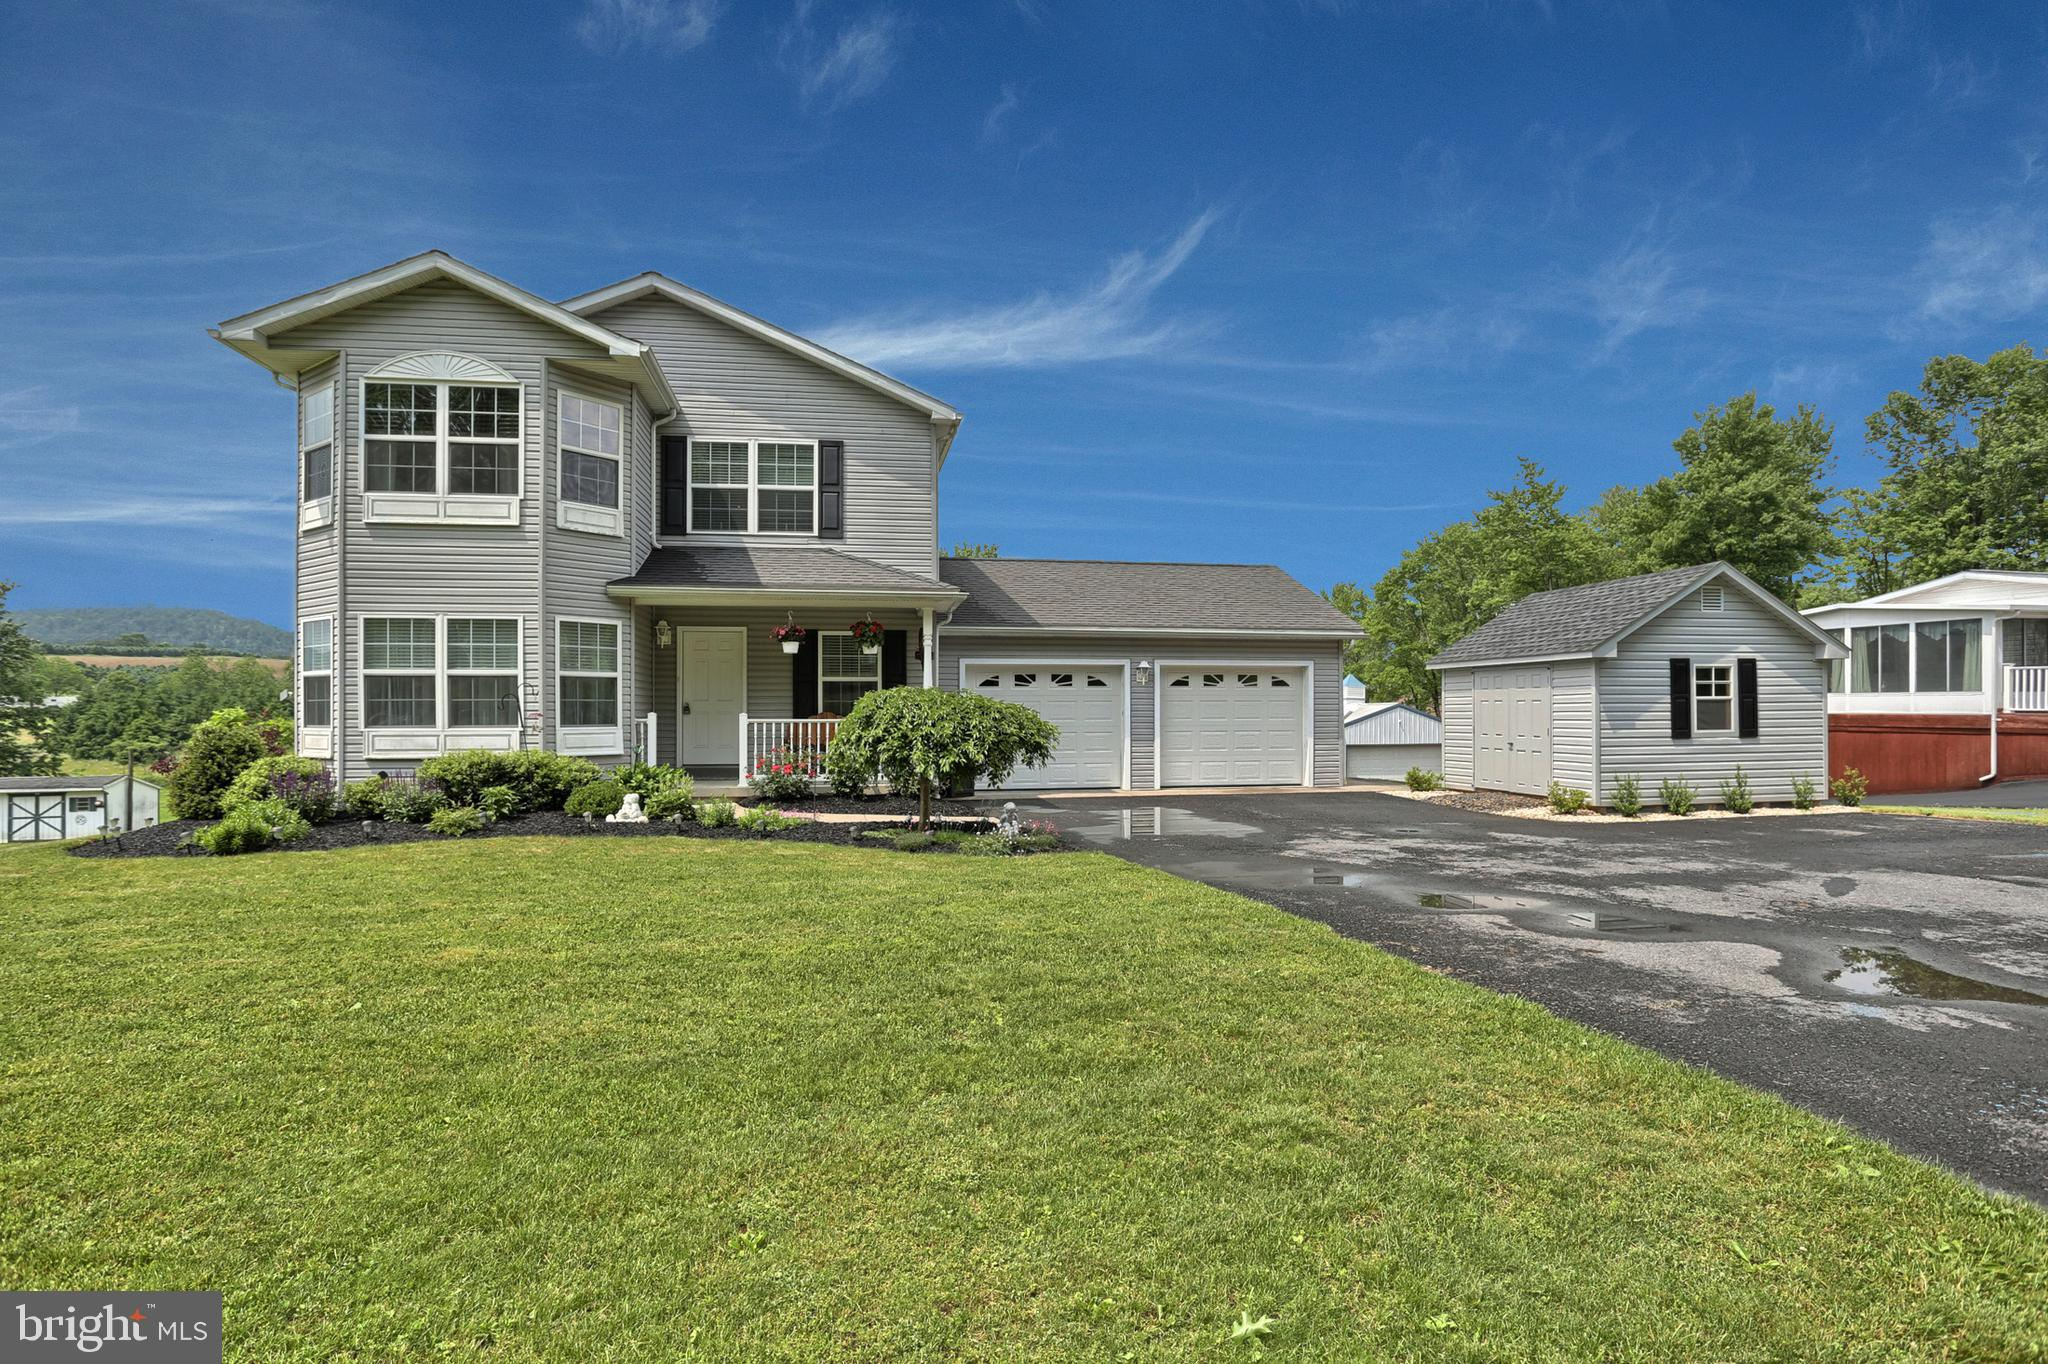 85 SWEET ARROW LAKE ROAD, PINE GROVE, PA 17963